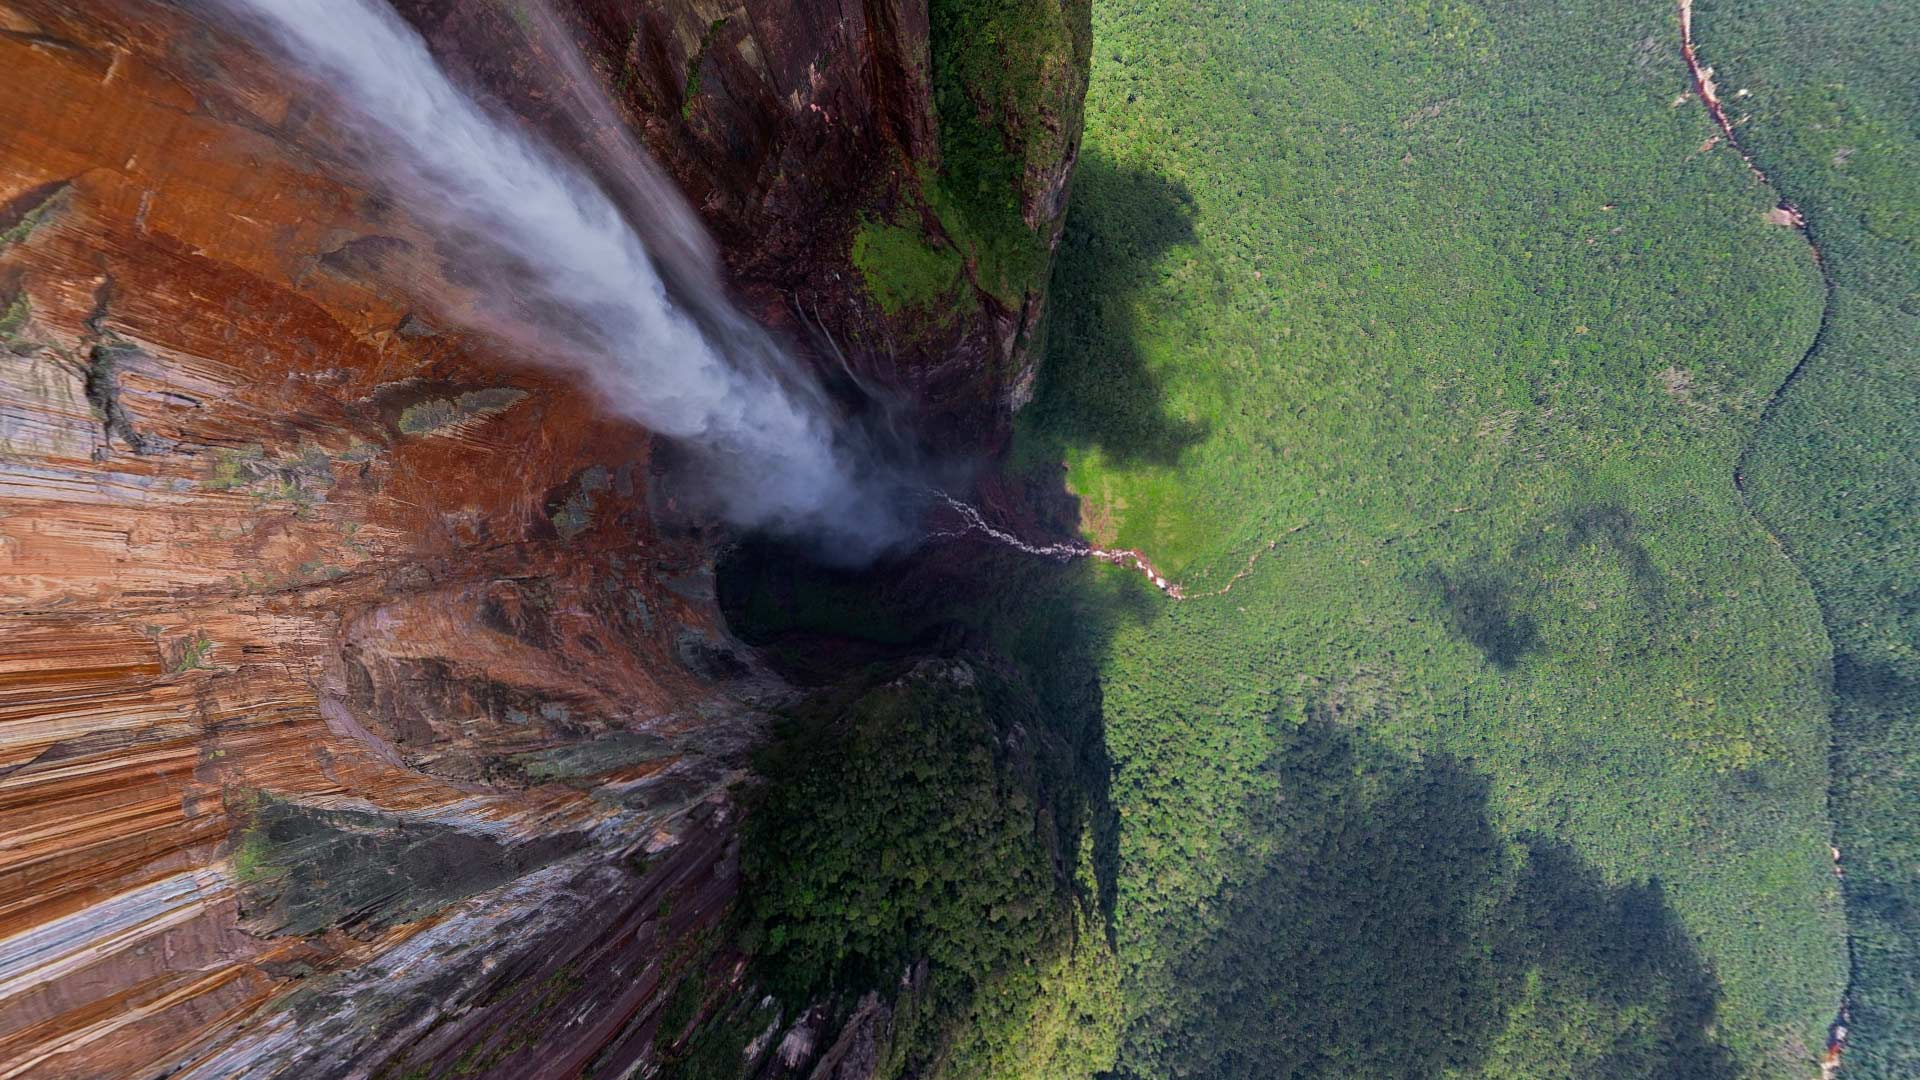 angel falls wallpaper - photo #16